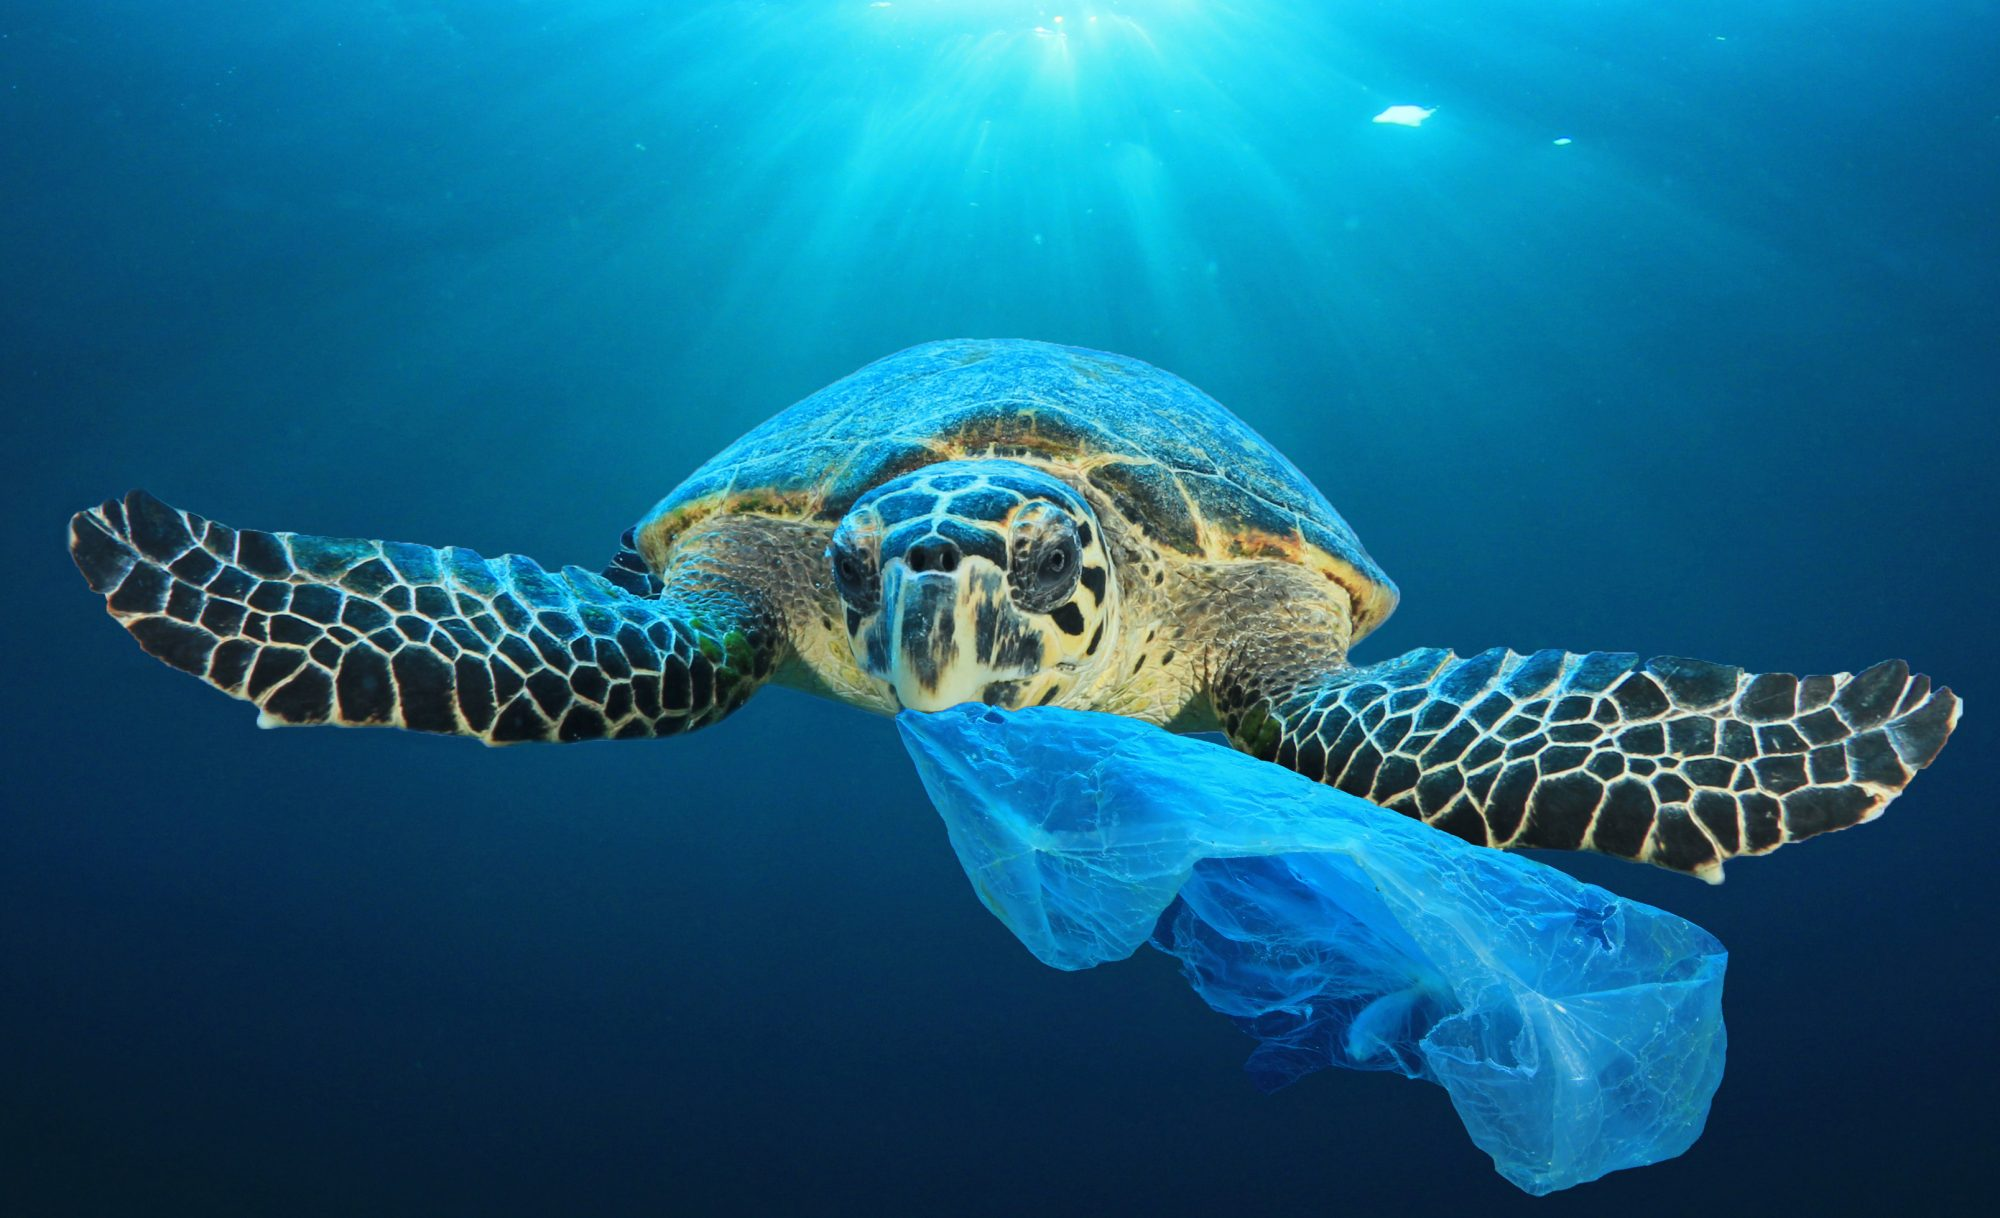 Green sea turtle eating a plastic bag